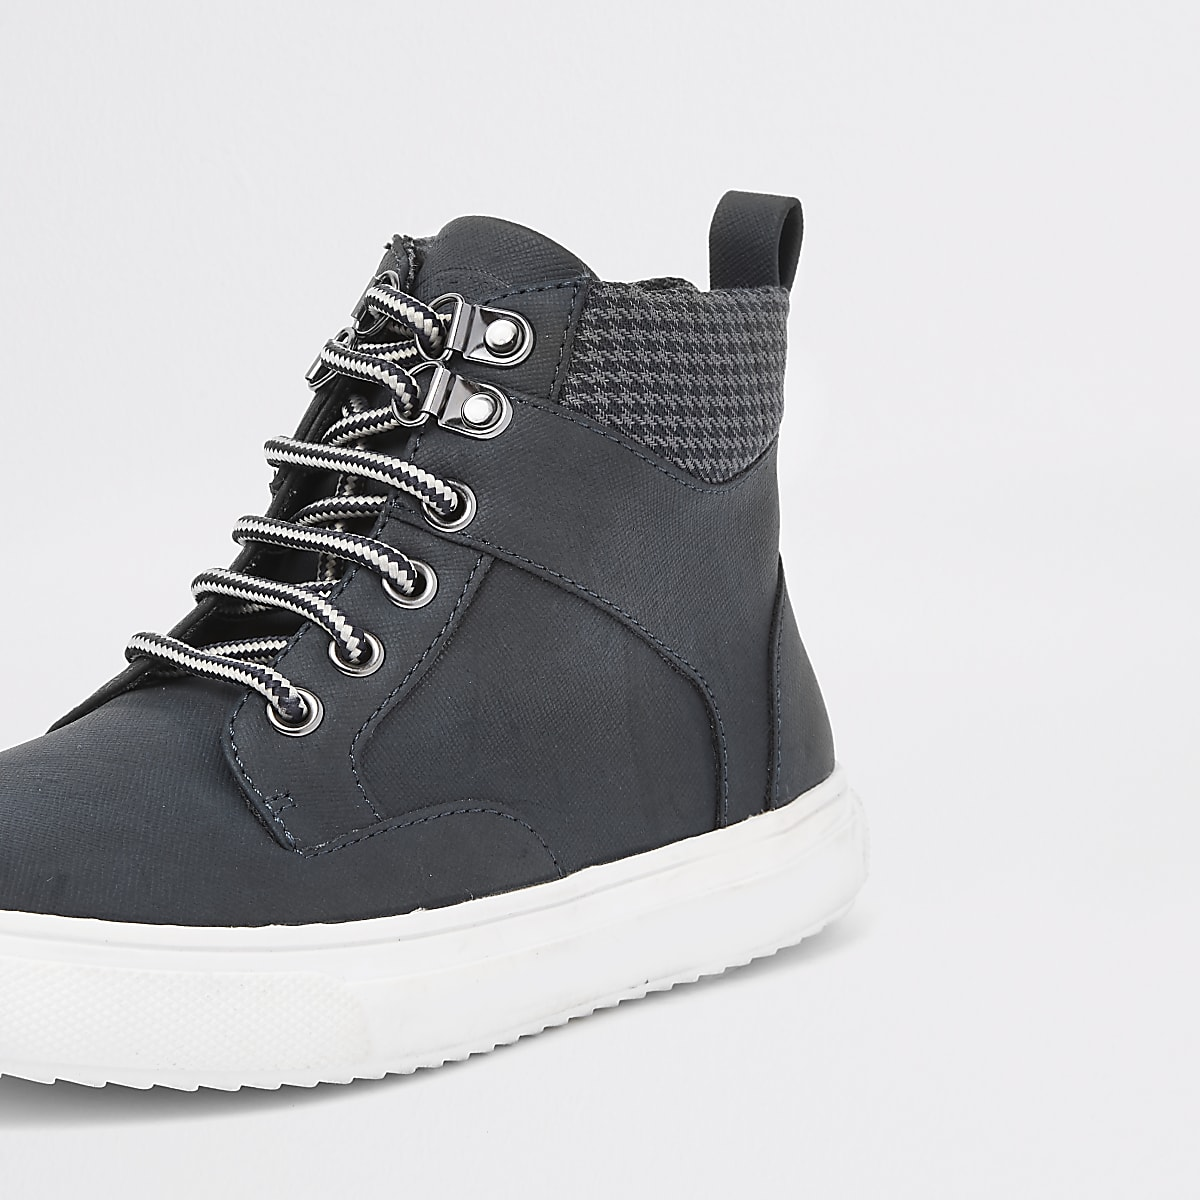 ca486306b0b5 Boys navy lace-up ankle boots - Boots - Footwear - boys